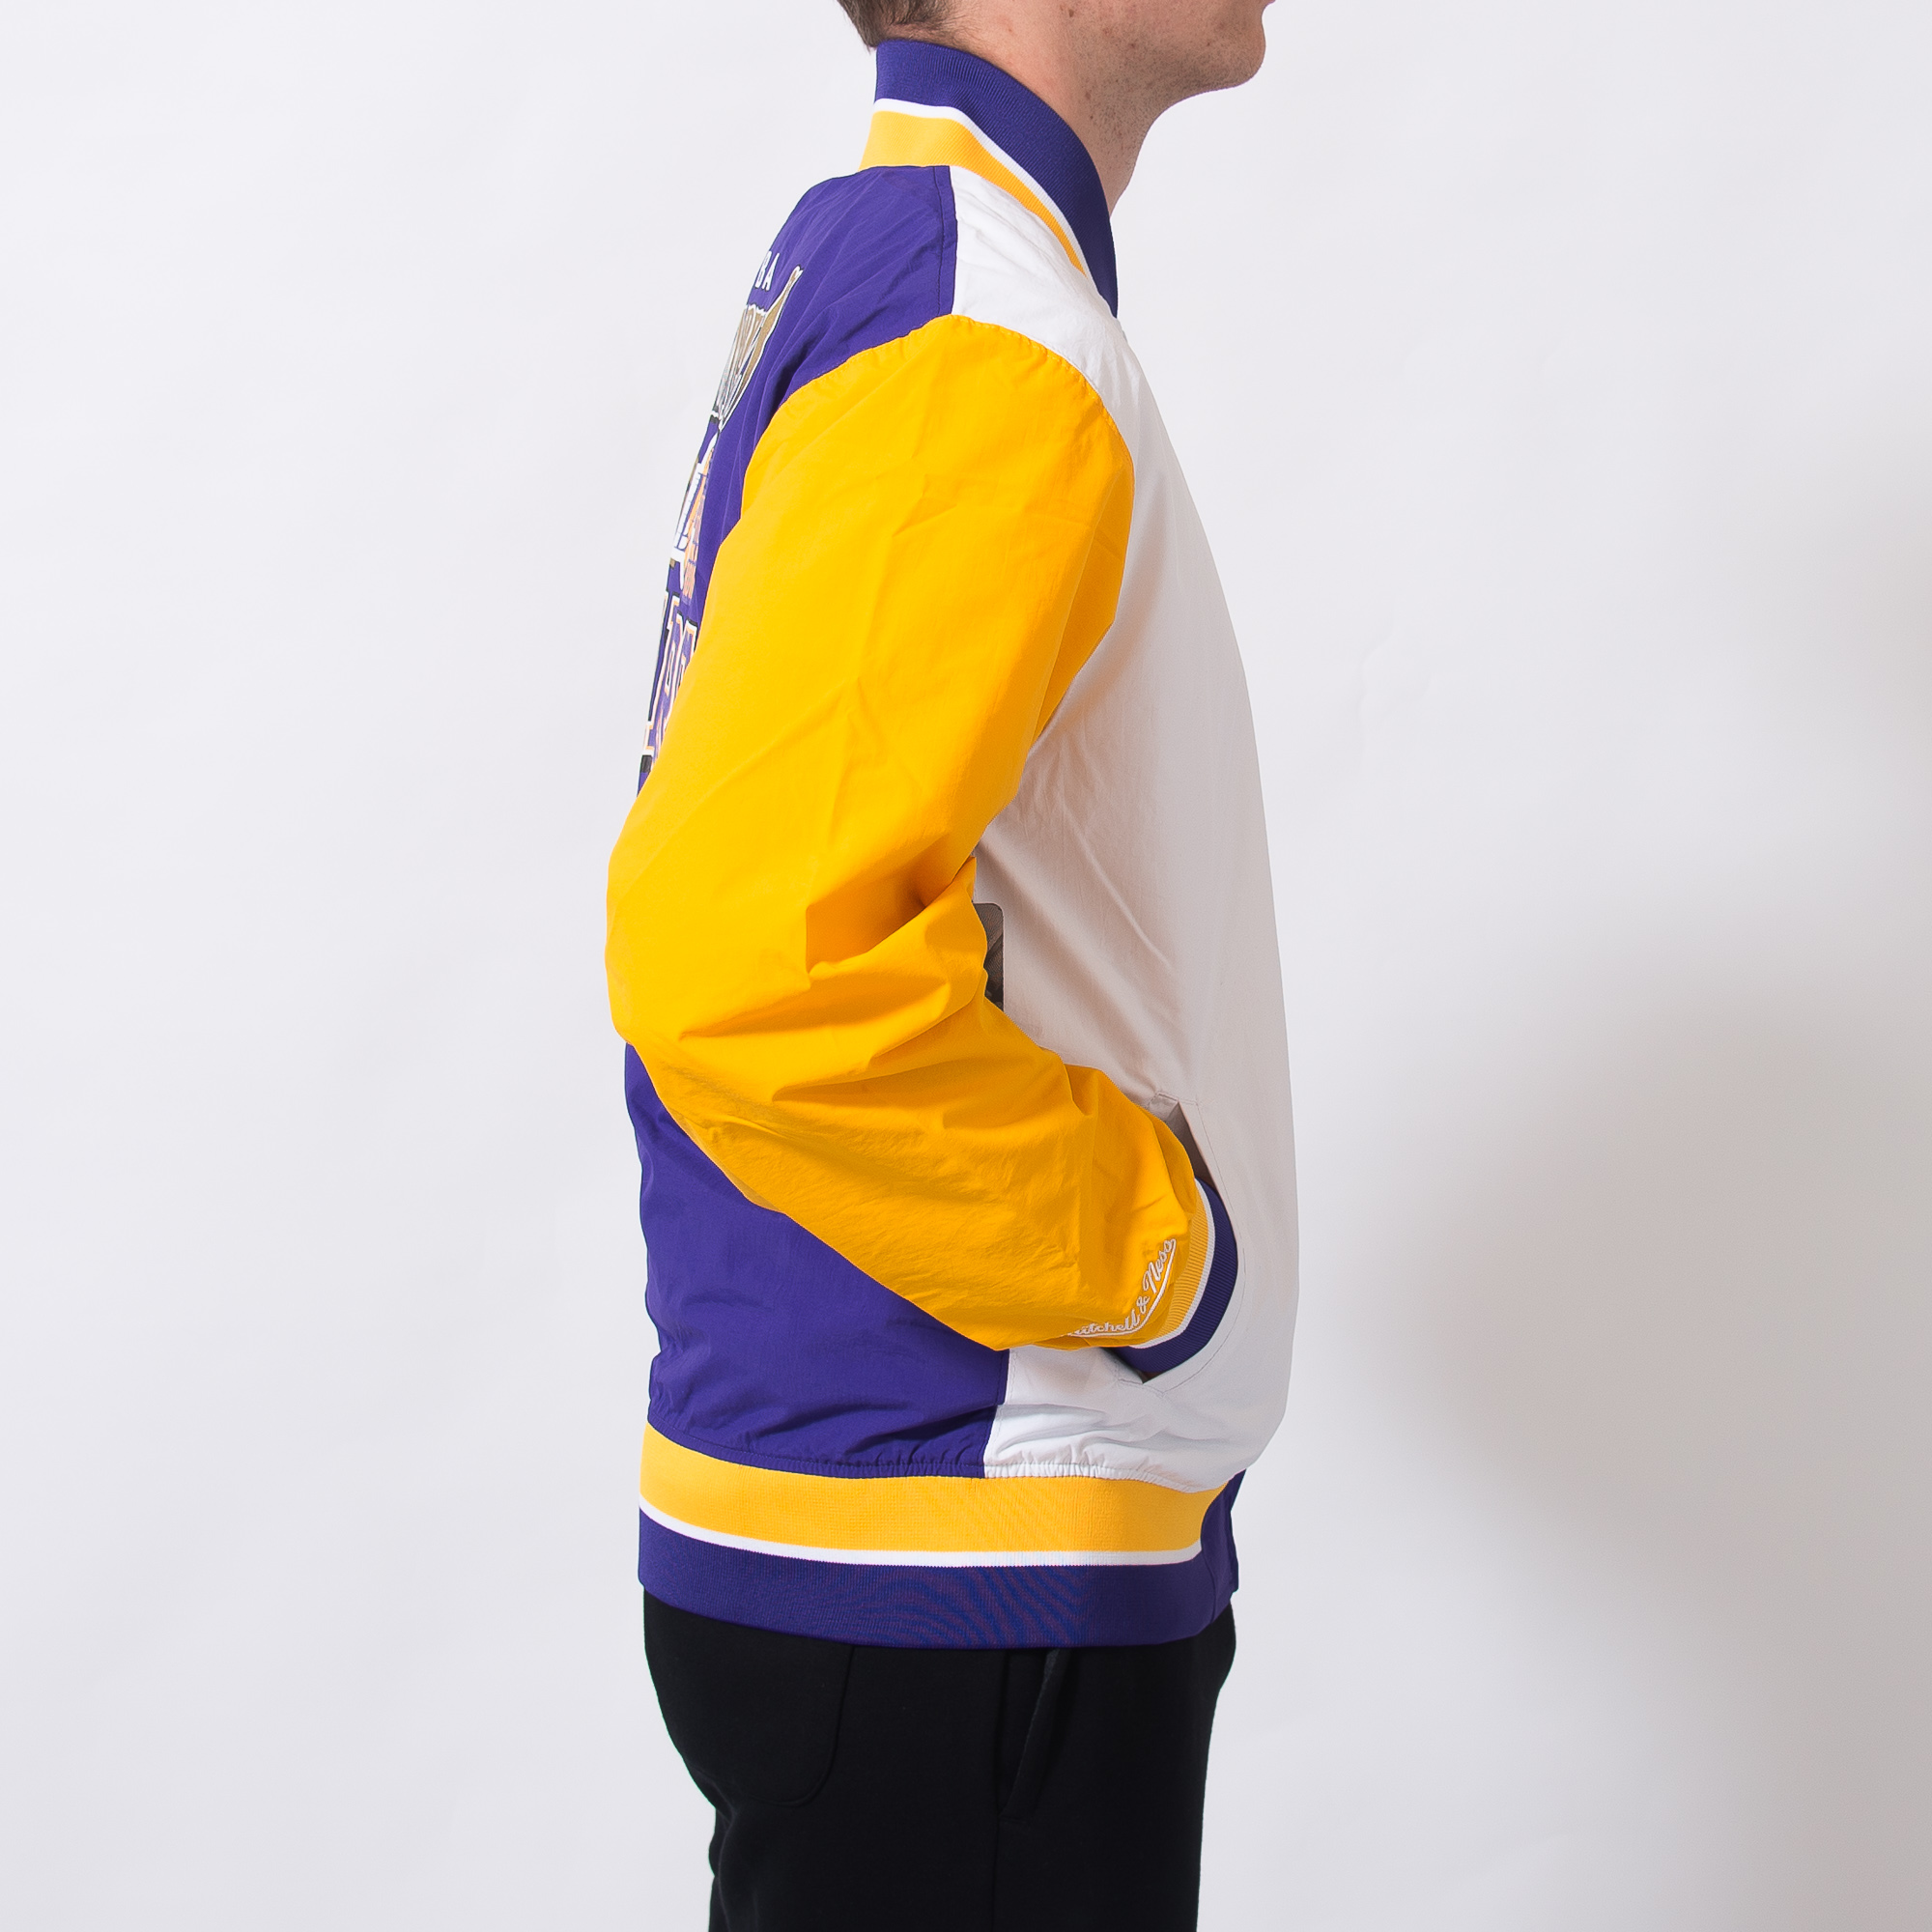 37ace1fb668 Mitchell & Ness NBA Los Angeles Lakers Team History Warm Up Jacket 2.0